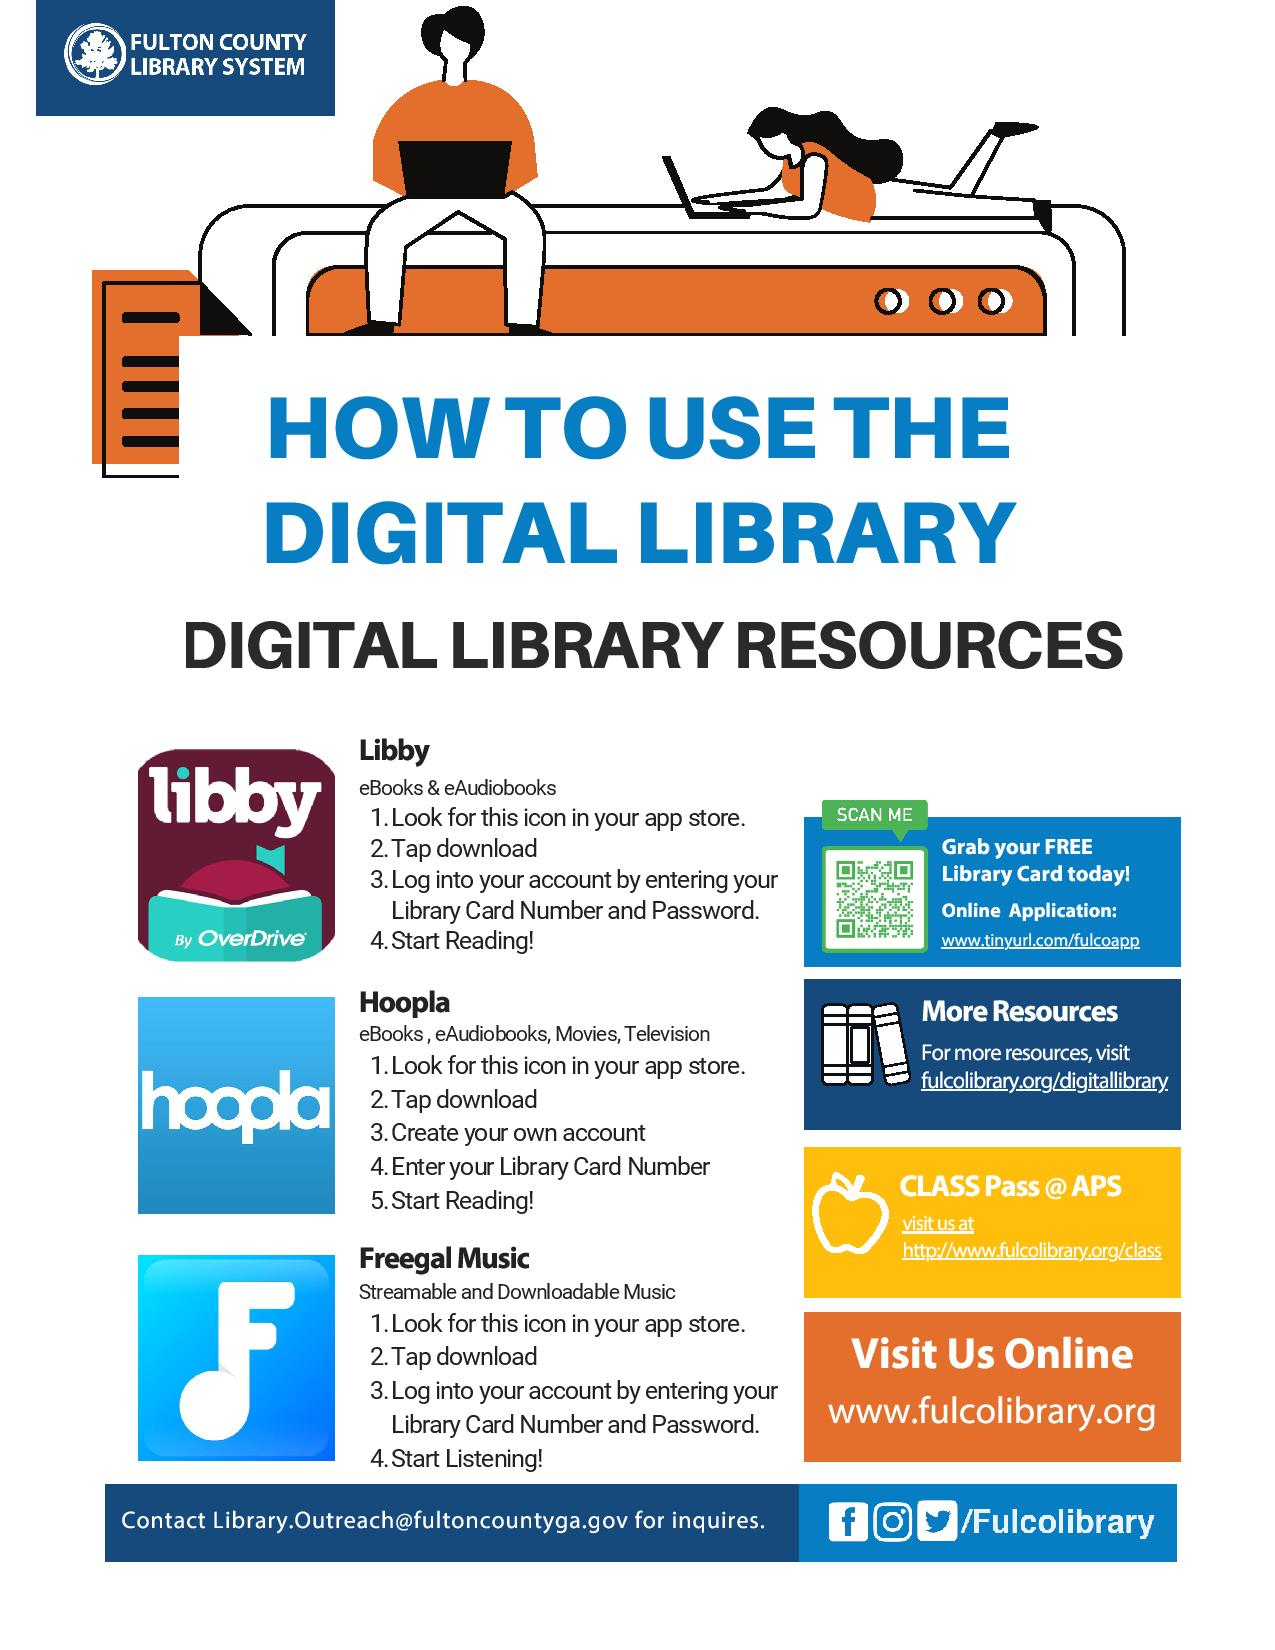 How to Use the Digital Library